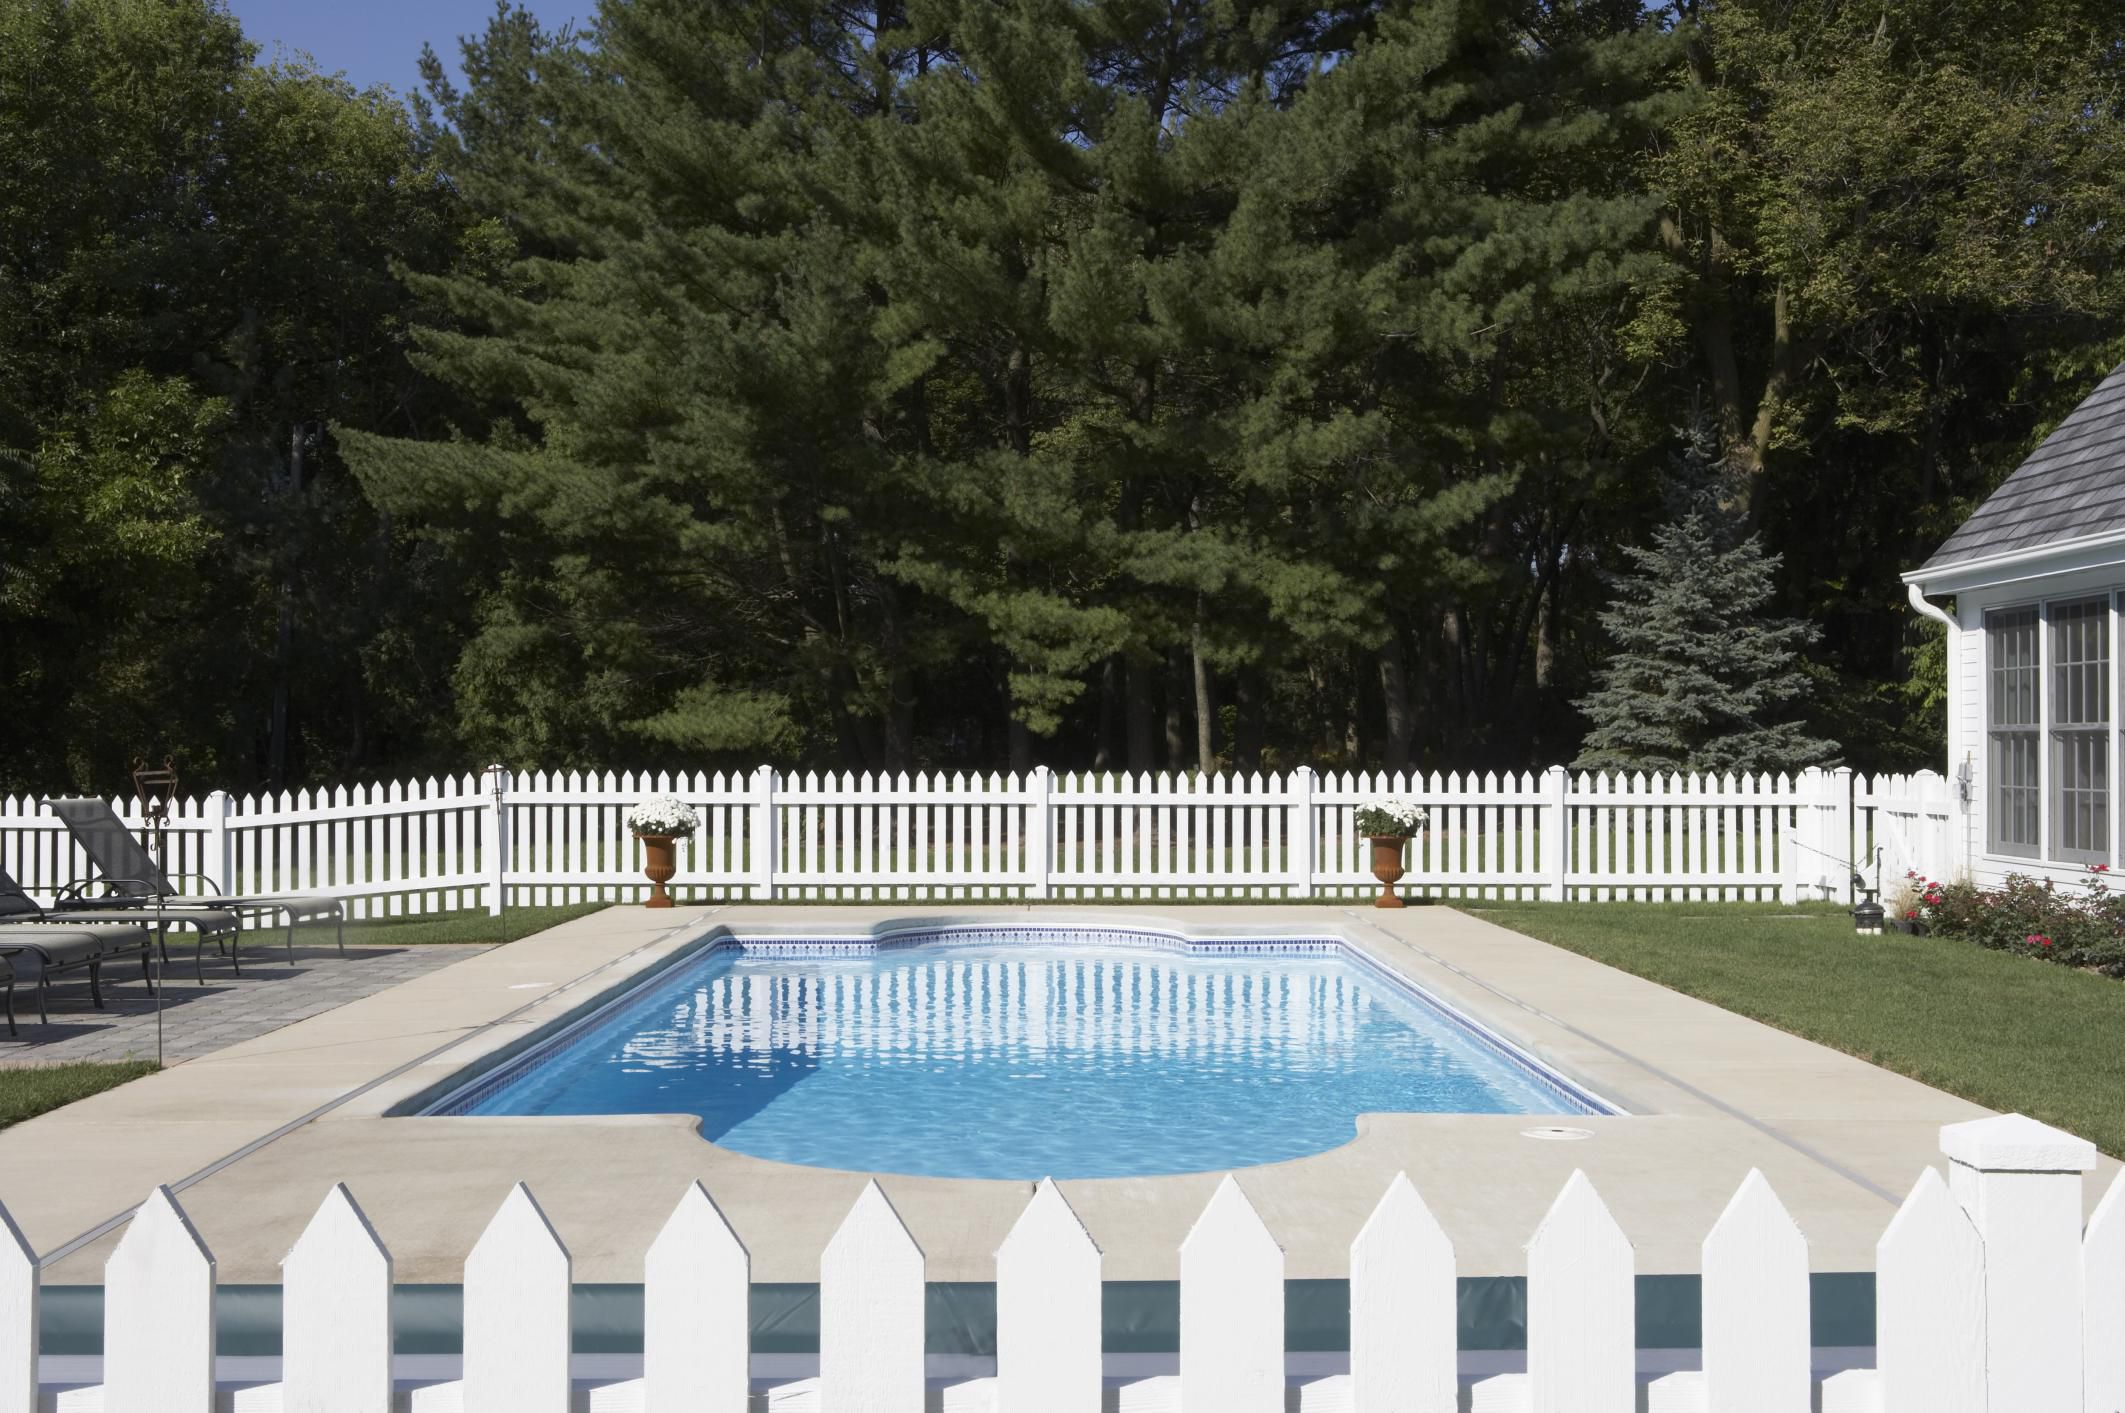 buying homes with swimming pools - what to look for